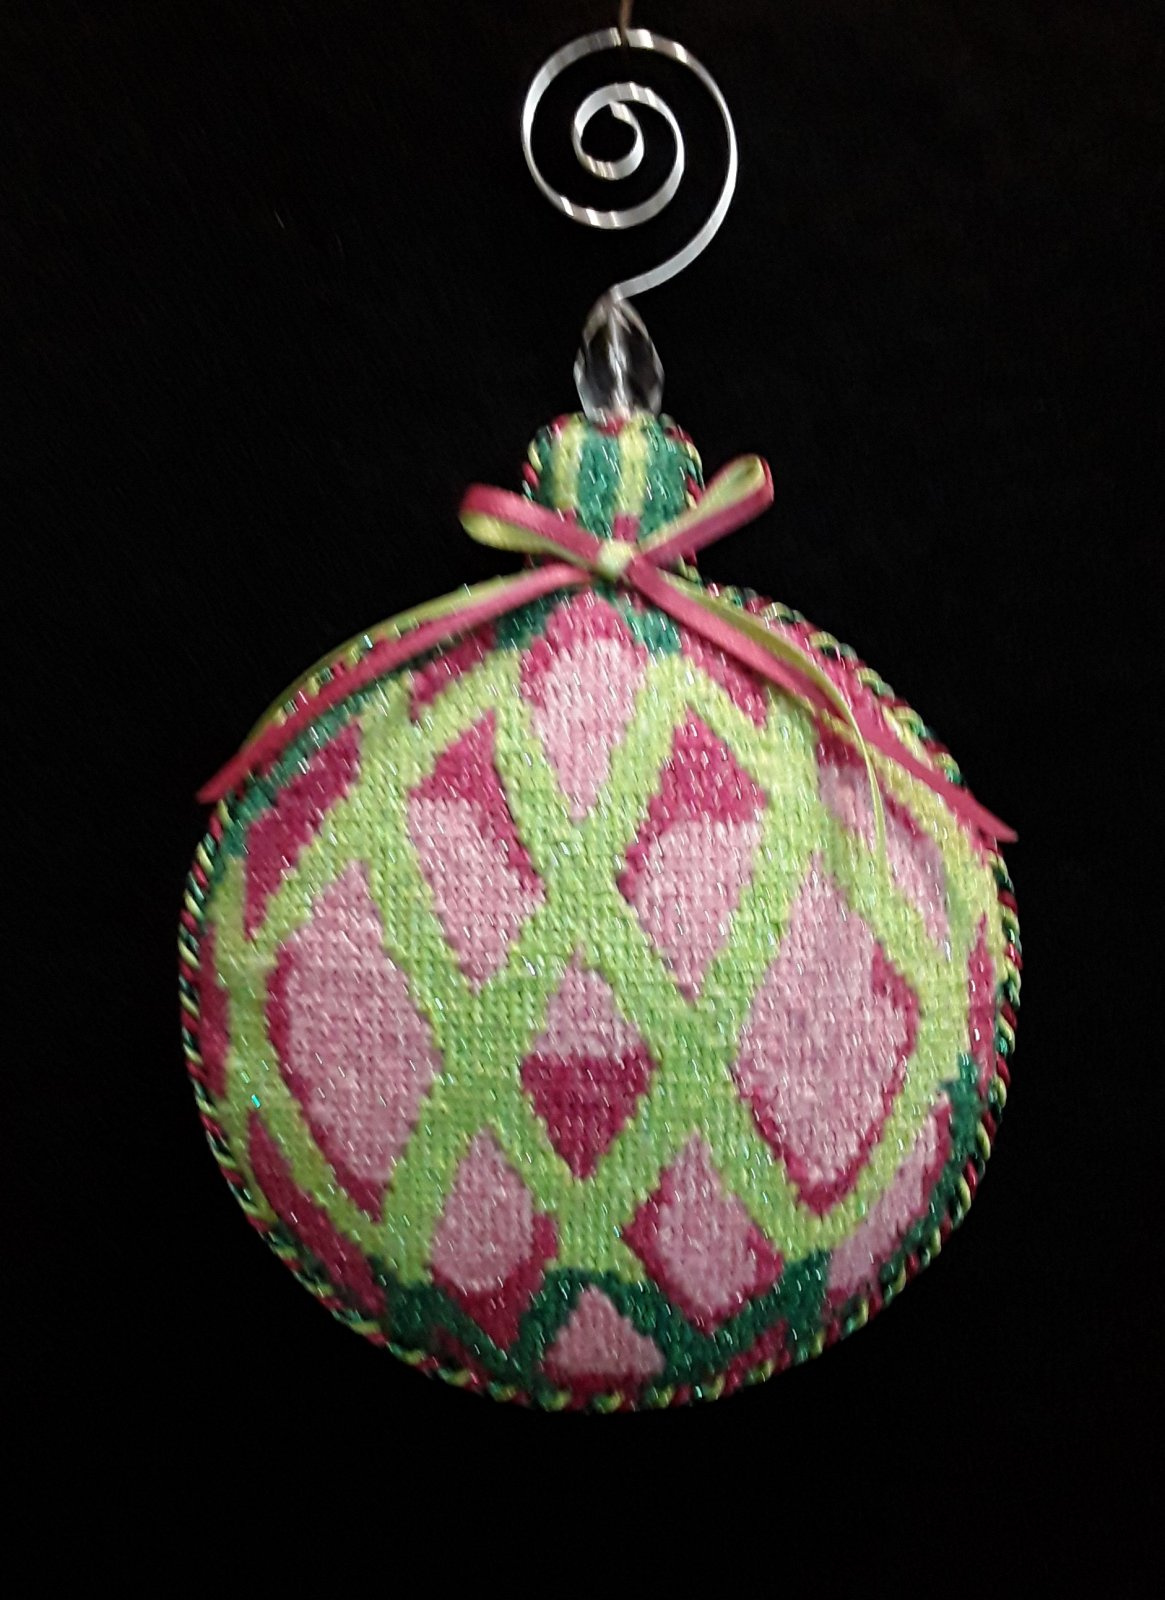 Pink  and Green Bulb Ornament - Stitched by Jean D.